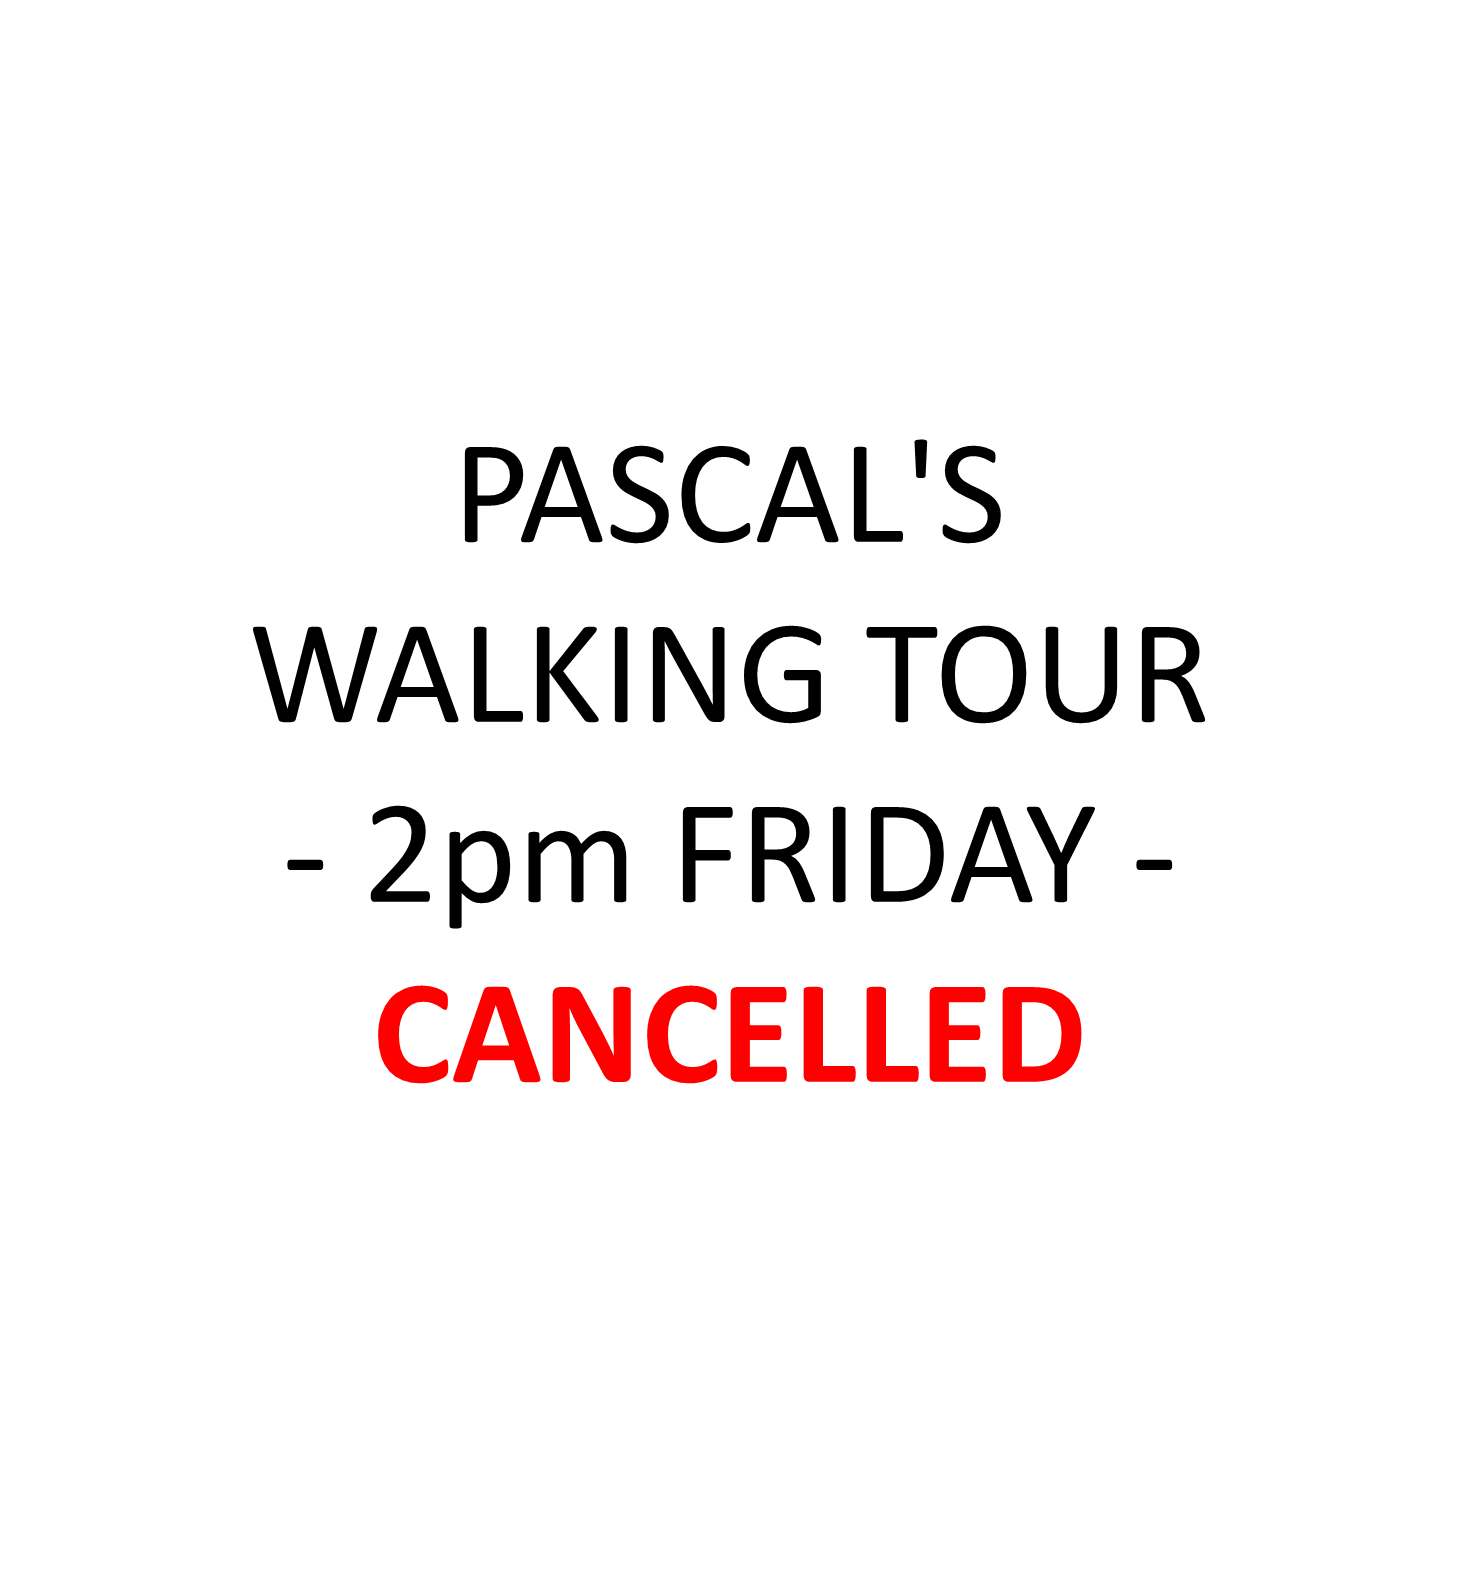 PASCAL'S WALKING TOUR - 2pm FRIDAY - CANCELLED